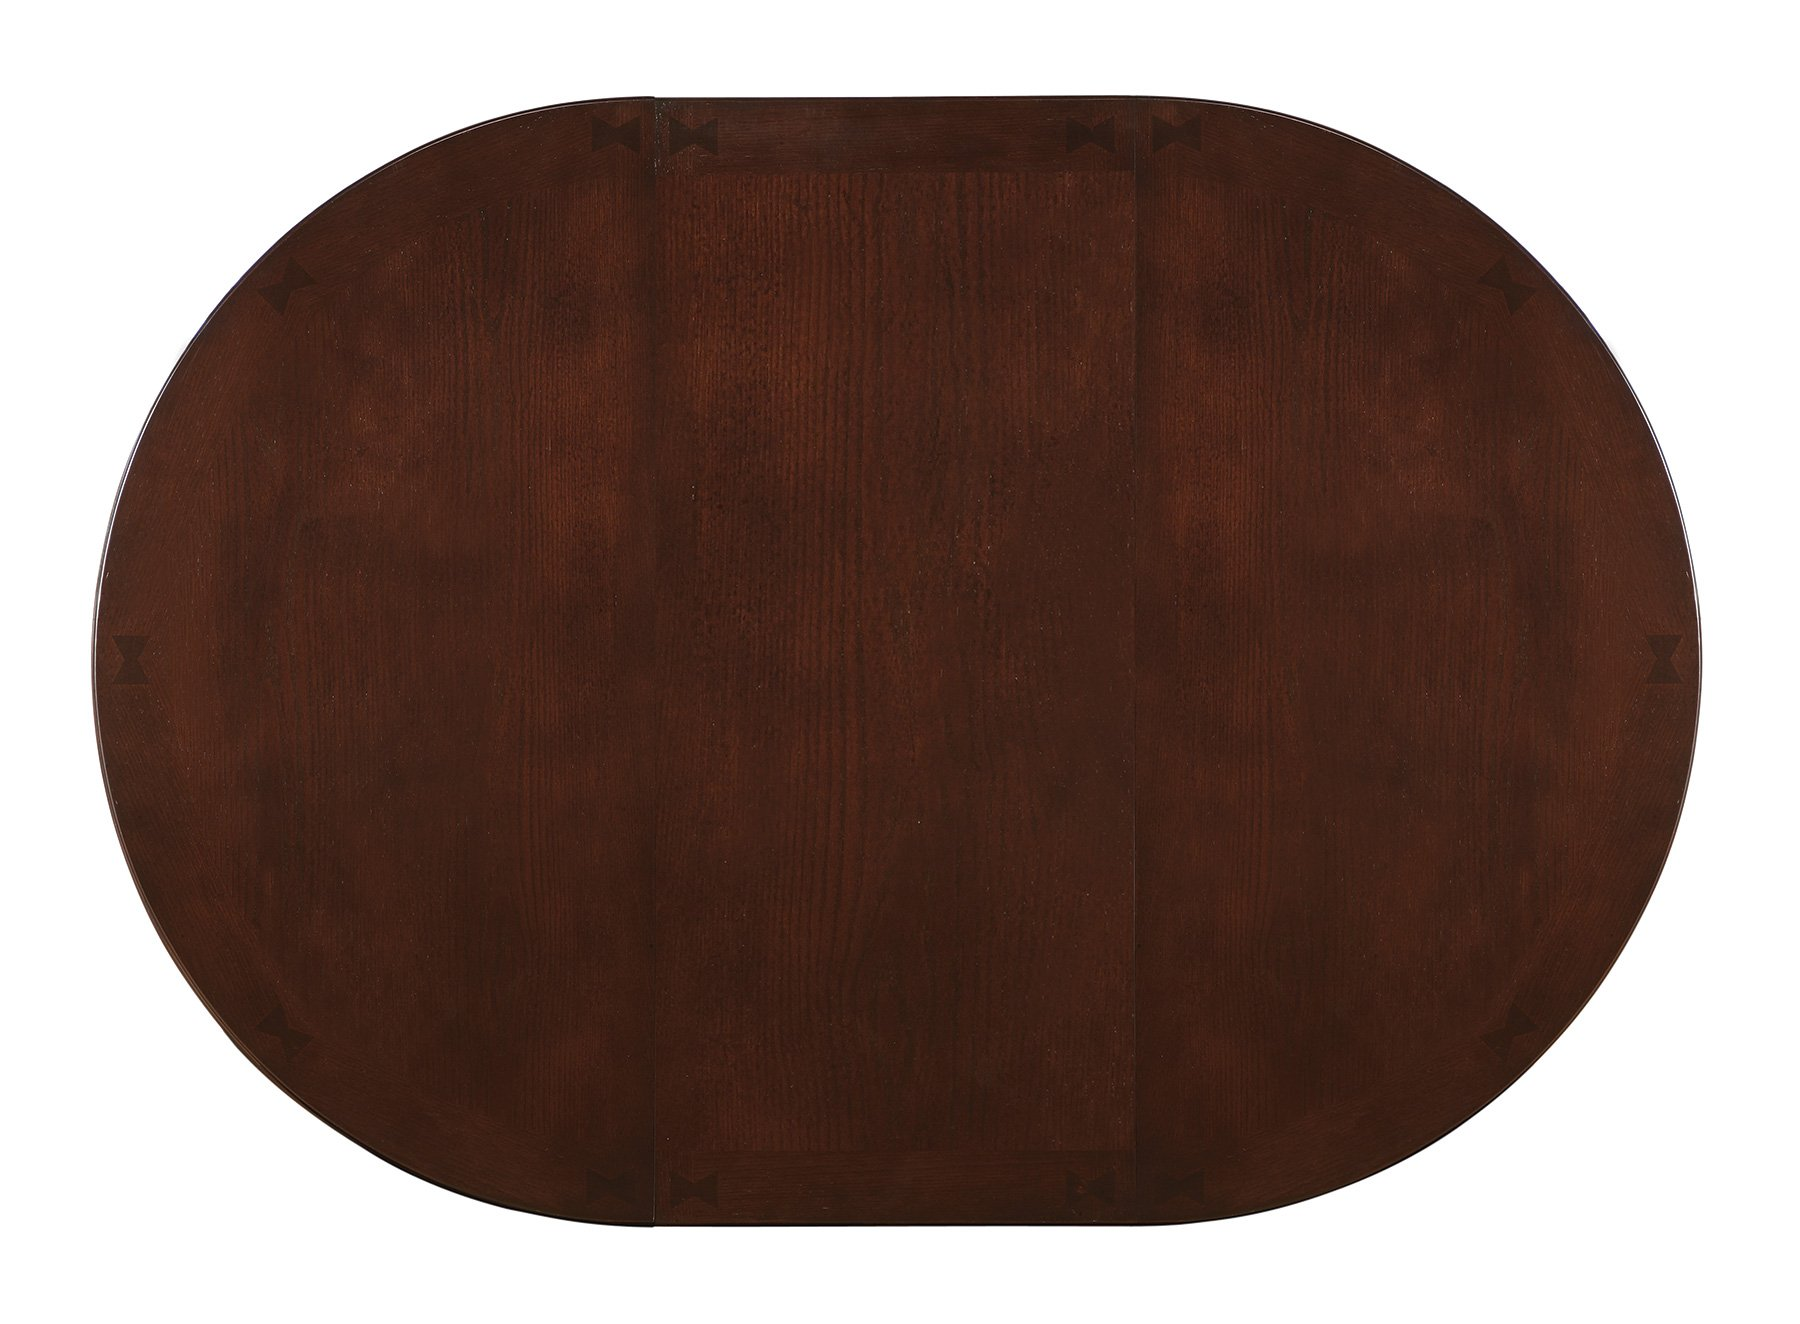 Lavon Counter Height Table Espresso by Coaster Home Furnishings (Image #2)